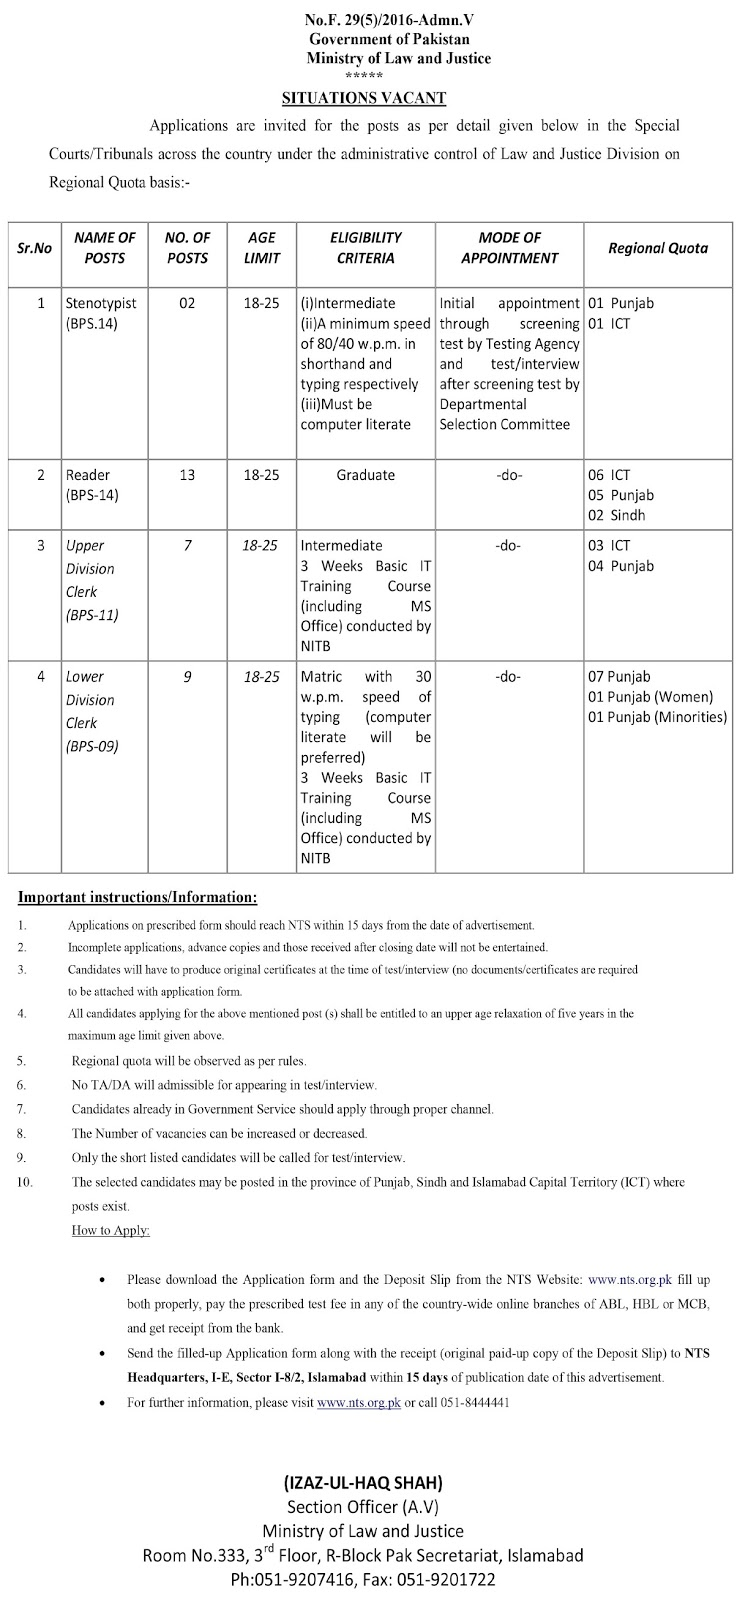 Ministry of Law and Justice Pak-Secretariat Islamabad Jobs